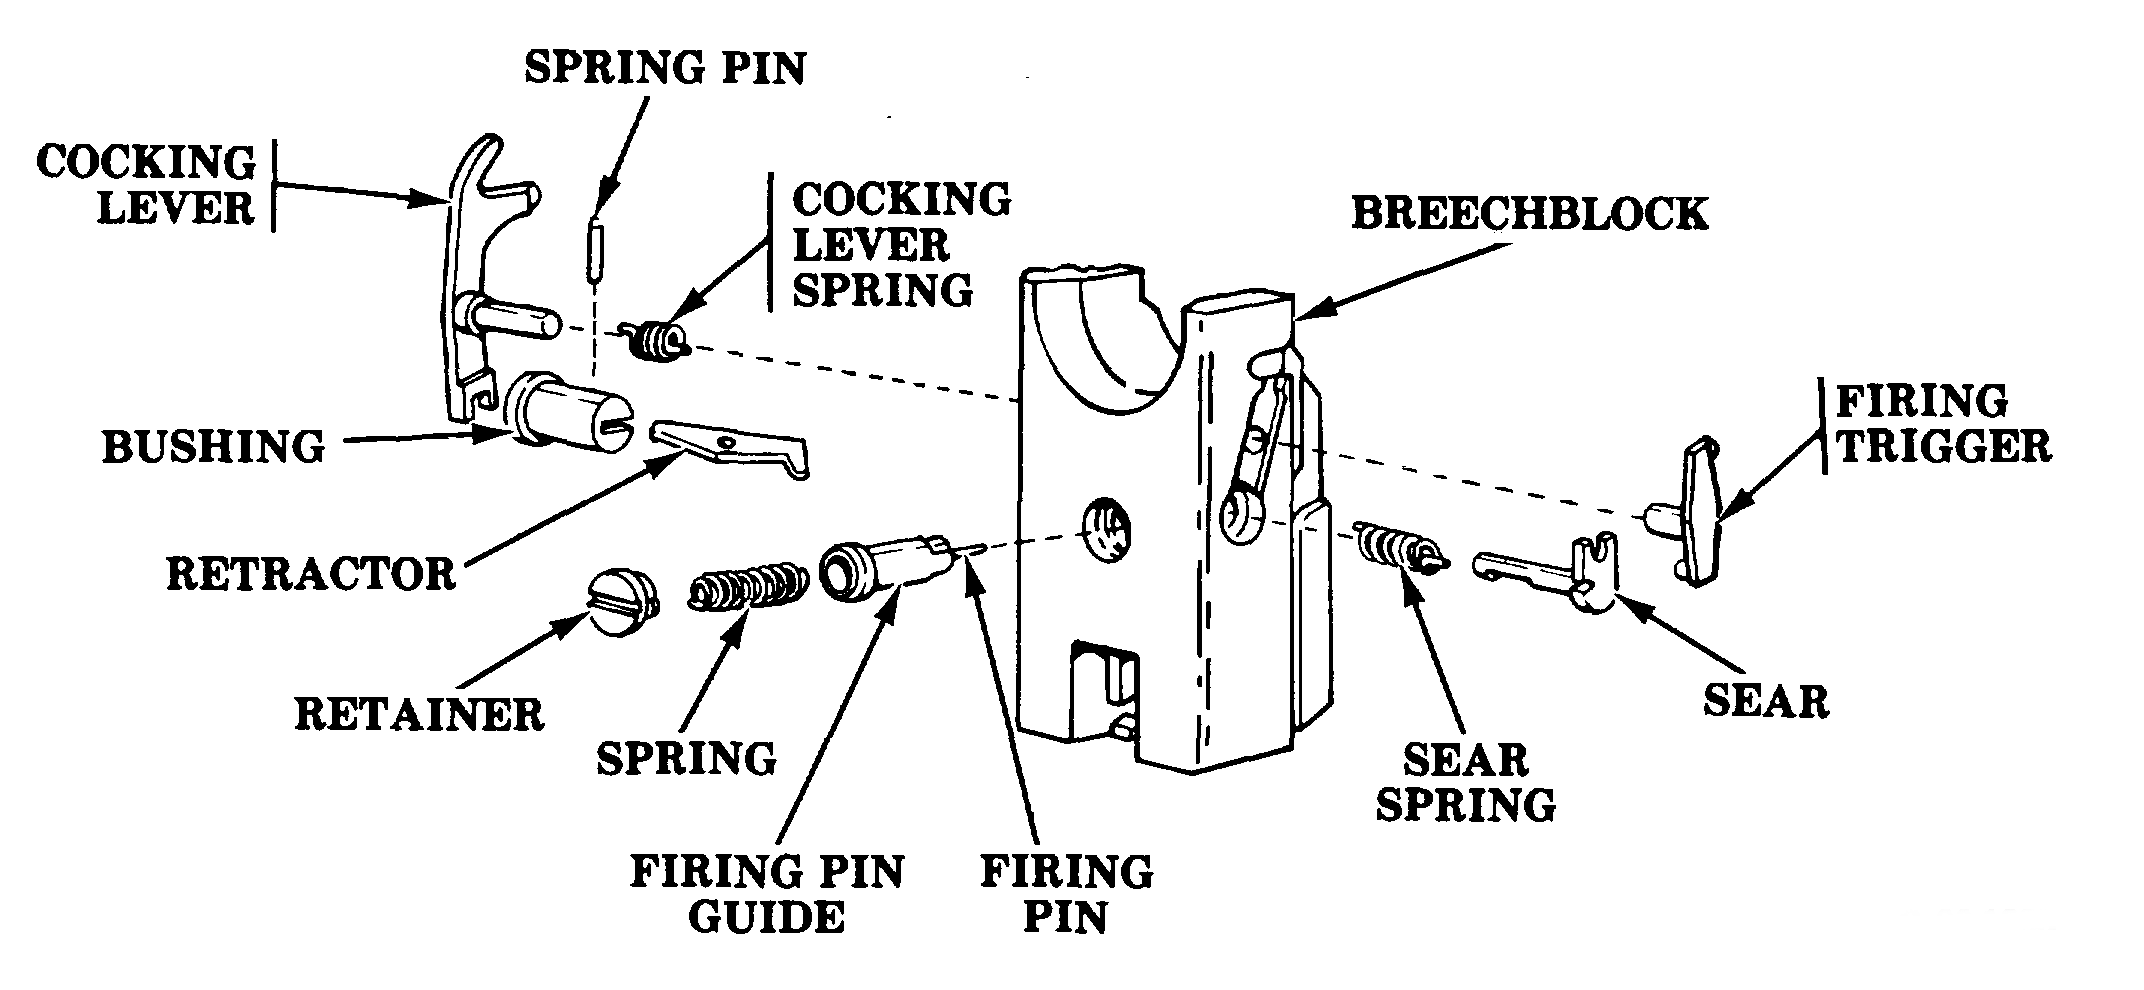 Breech Mechanism